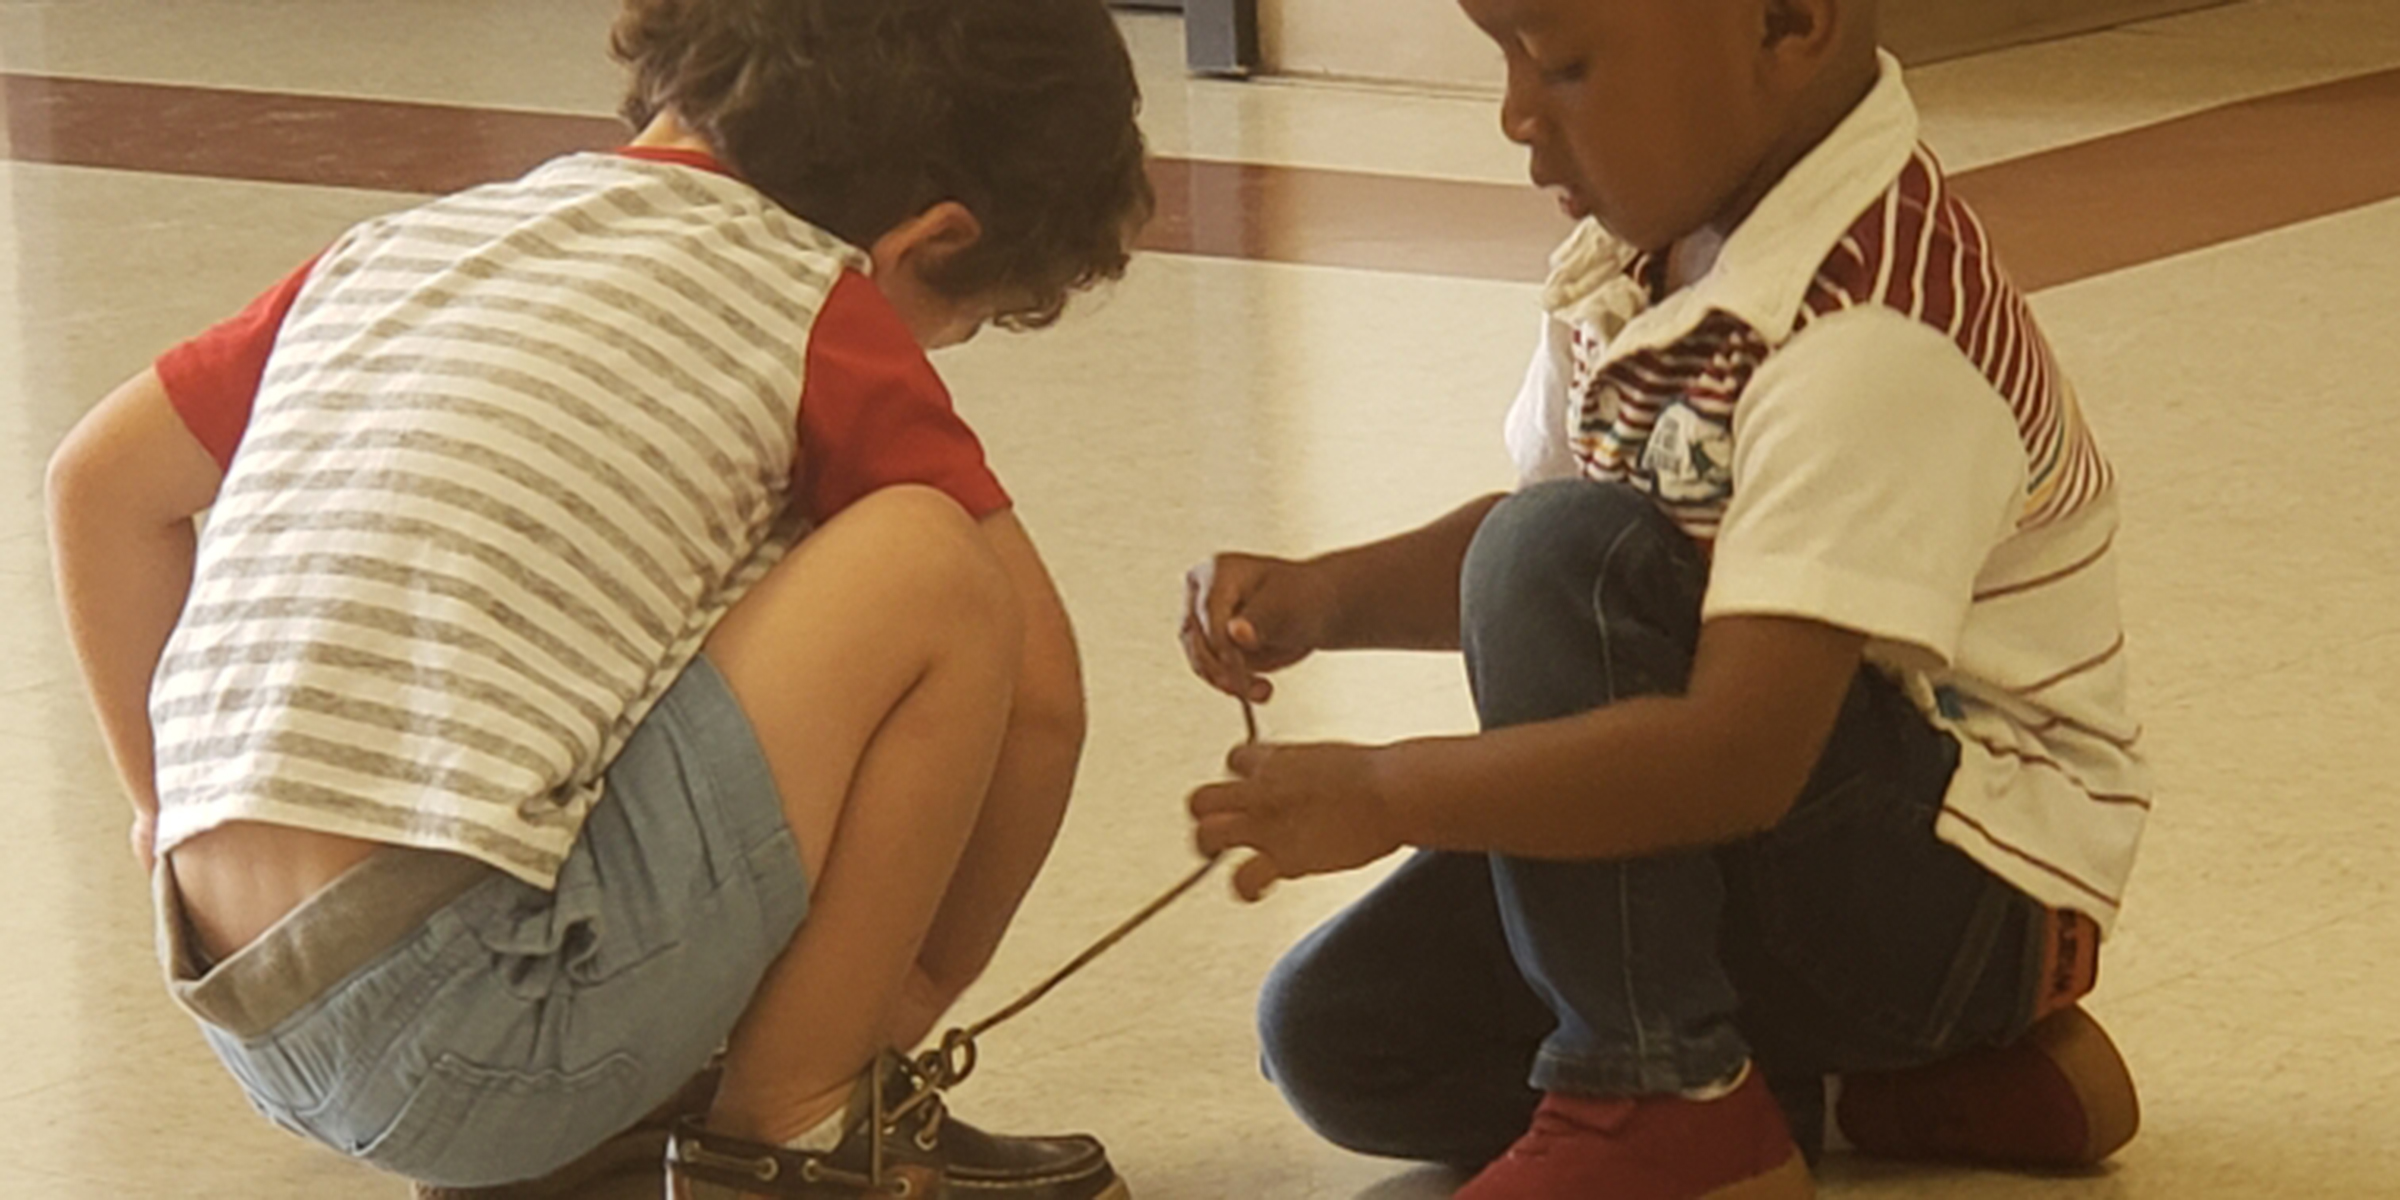 Little boy, 2, shows new friend how to tie his shoelaces in sweet viral photo